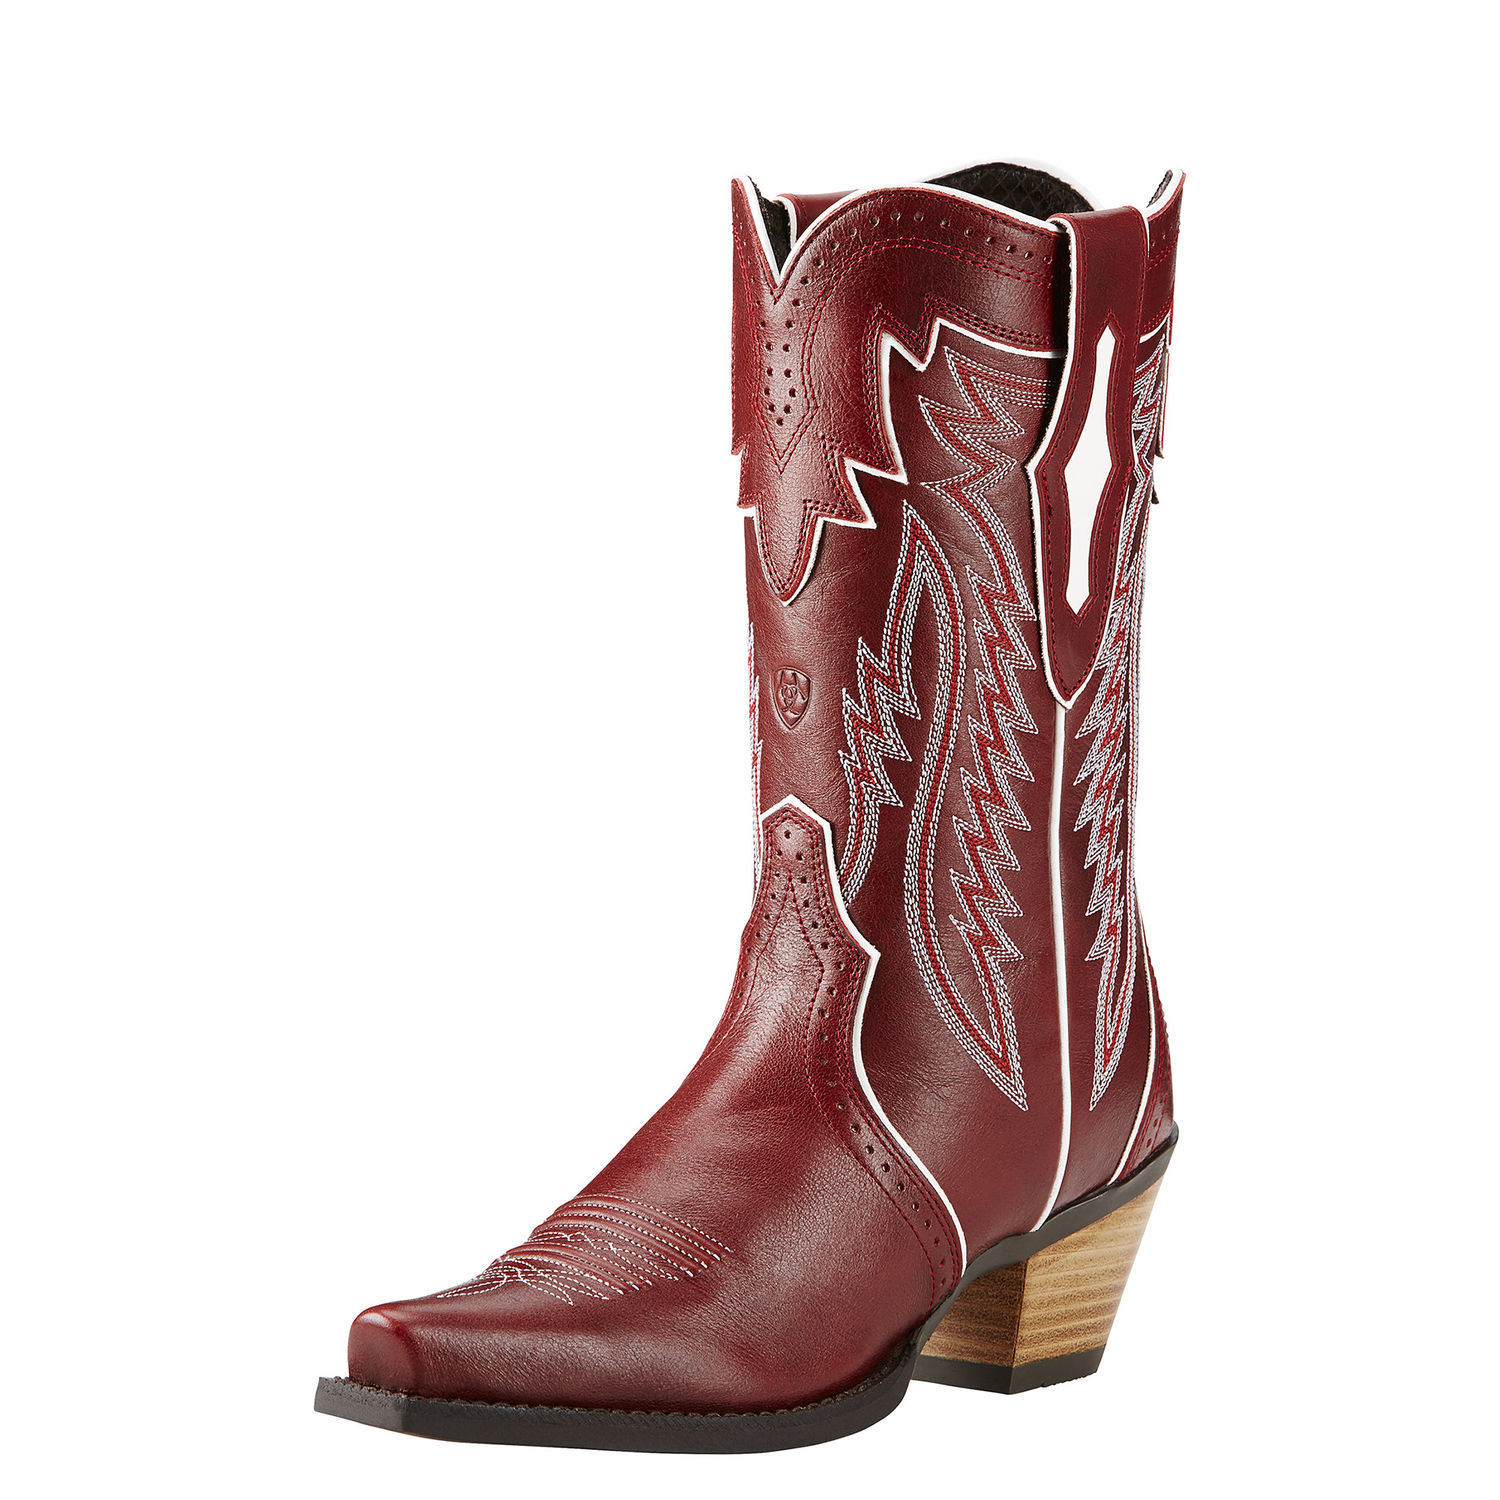 Ariat Calamity   Round Toe Leather  Western Boot